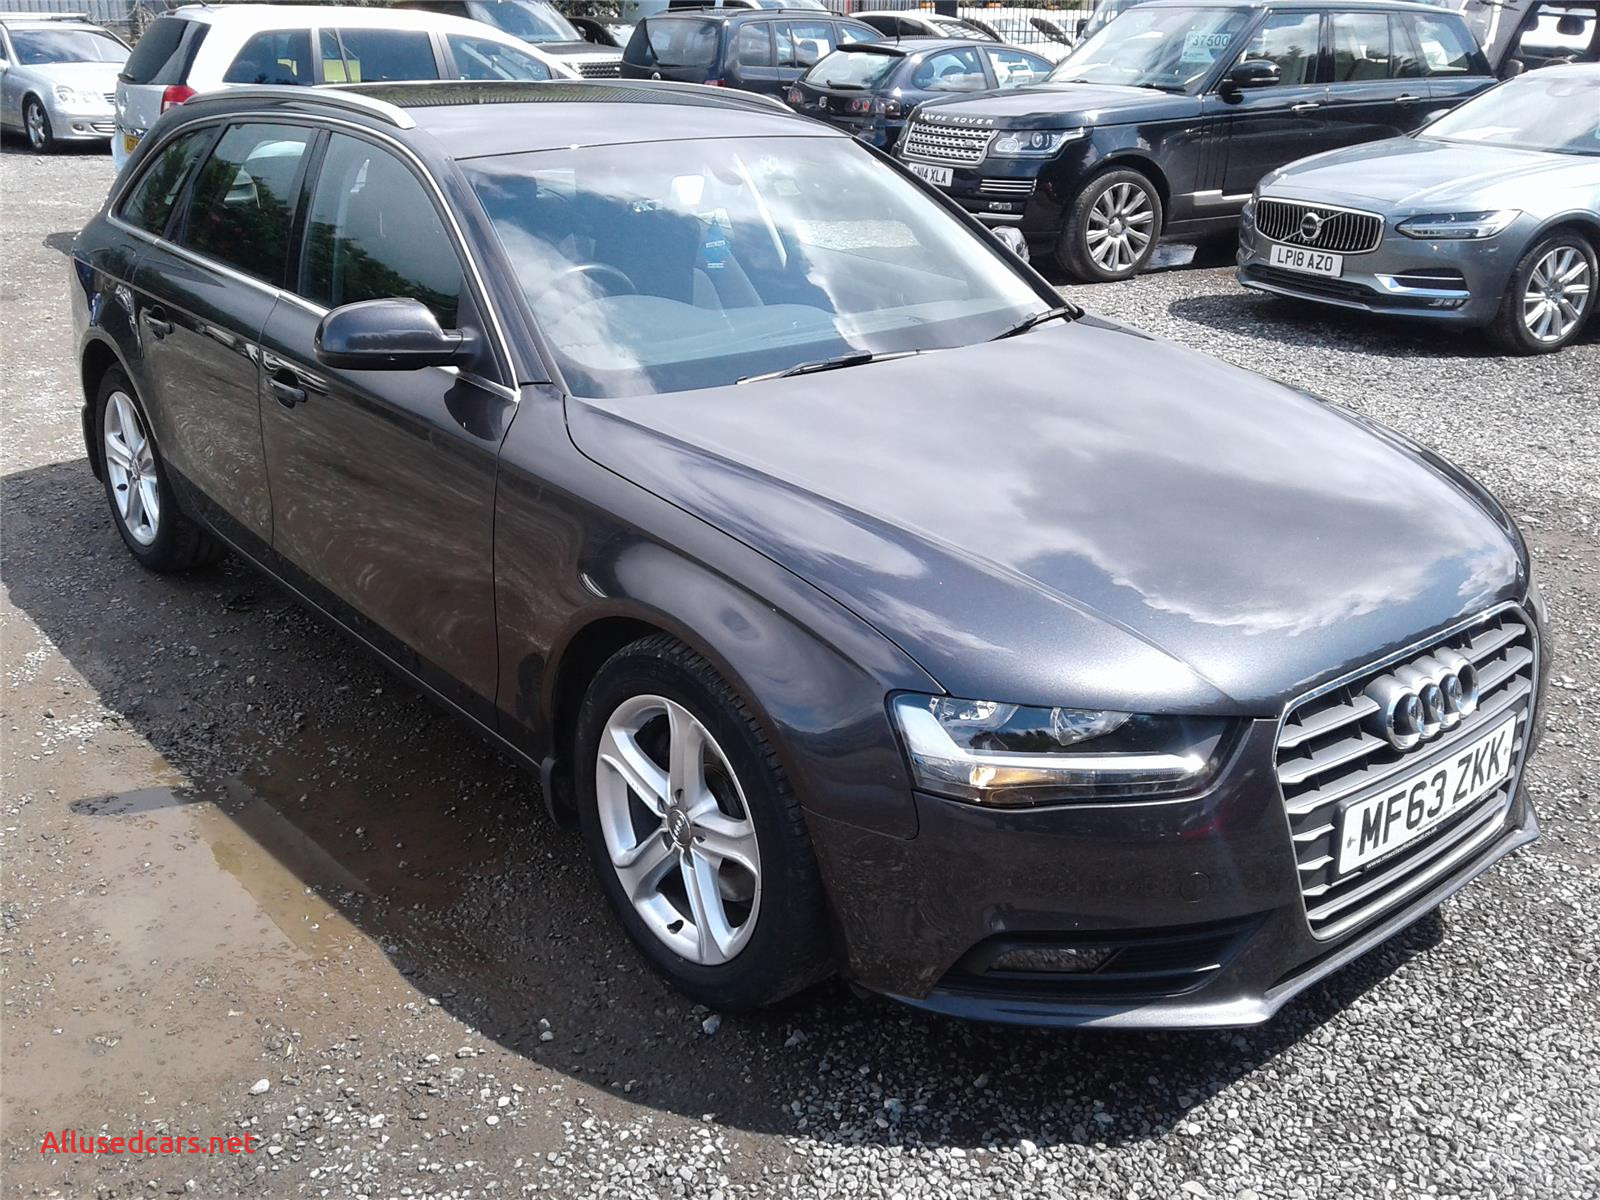 Awesome Repossessed Cars for Sale Near Me Inspirational Cars for Sale Near Me Under 1000 Awesome Repossessed Cars